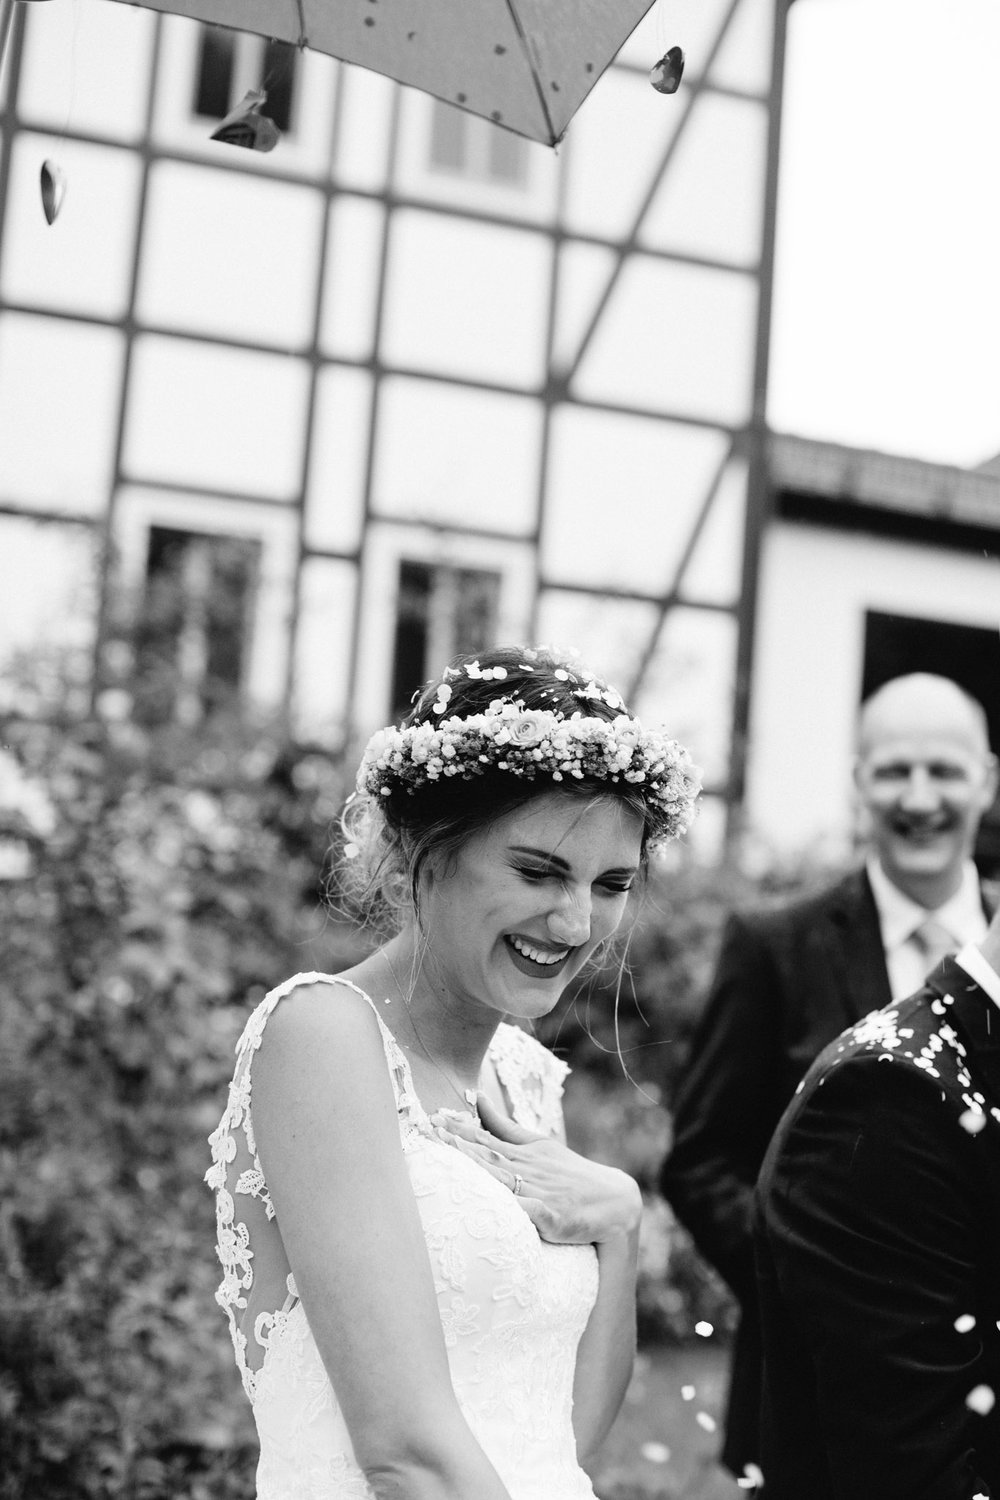 Nordhausen-Harz-Hochzeit-Pia-Anna-Christian-Wedding-Photography-LM-60.jpg